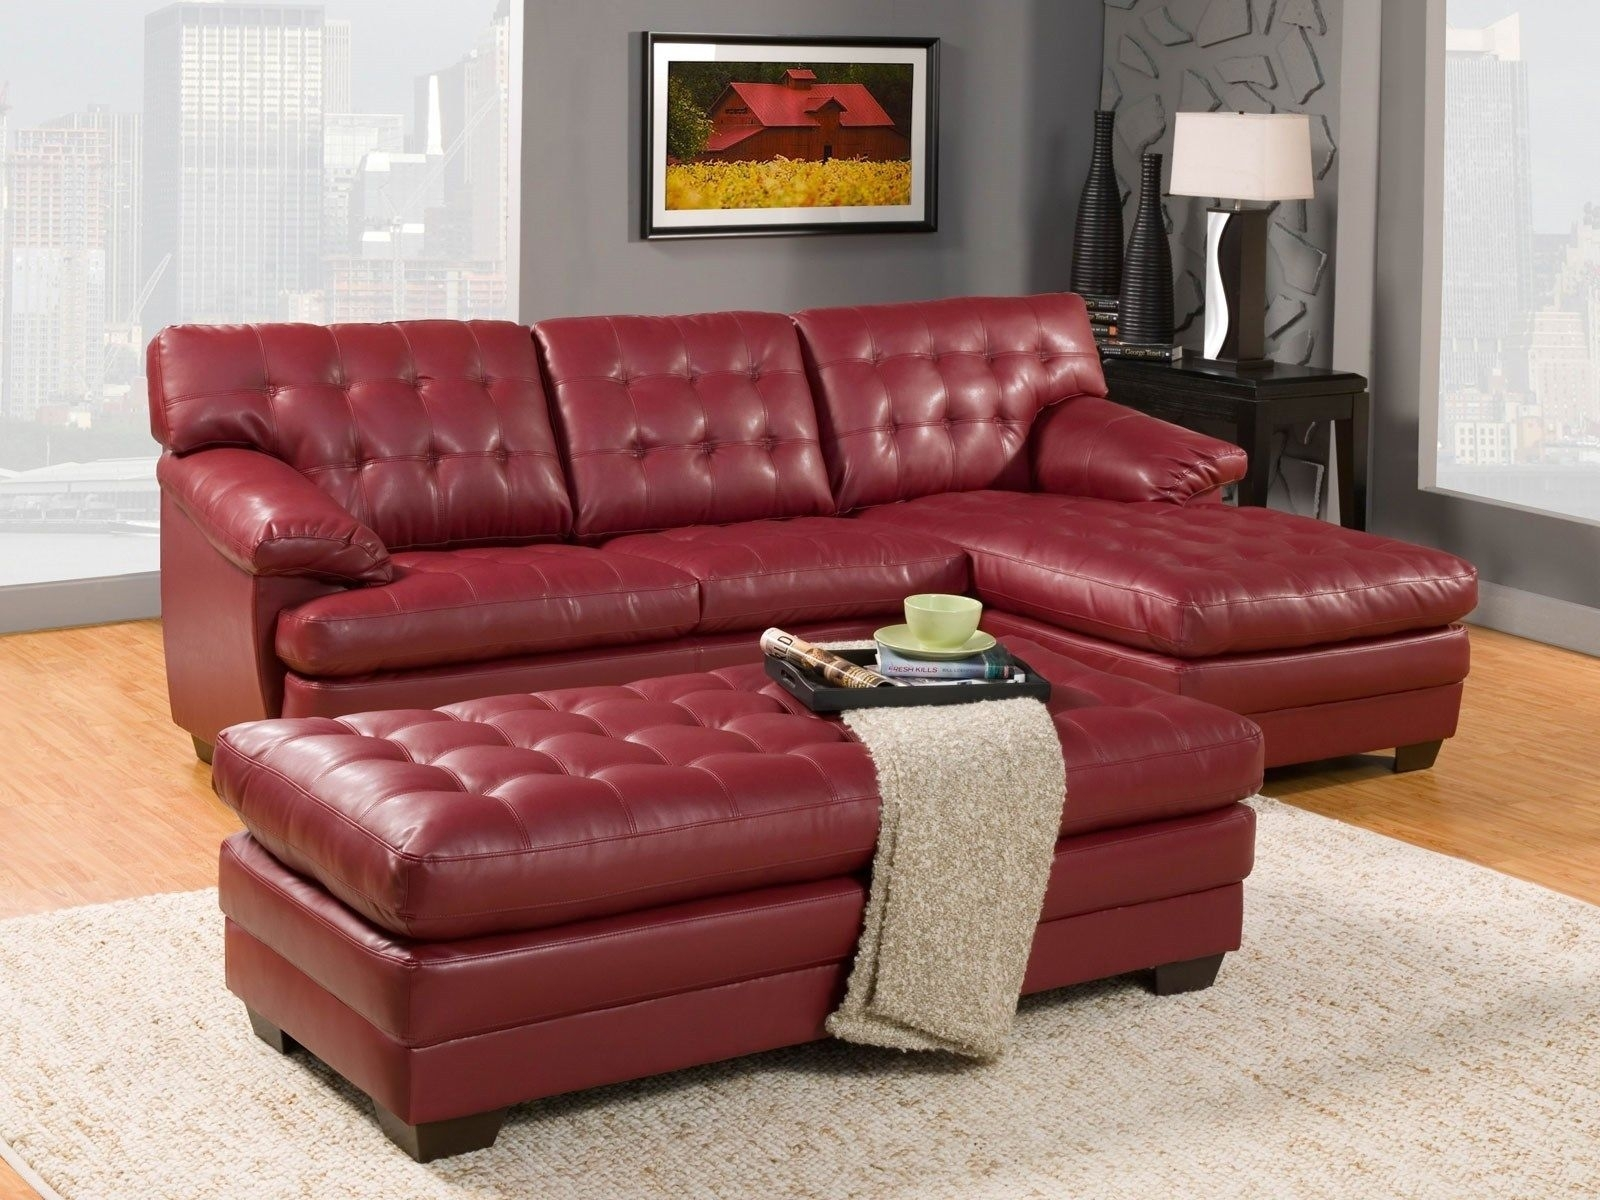 Chaisson Contemporary Bonded Leather Sectional Sofa With Inside Halifax Sectional Sofas (View 8 of 10)